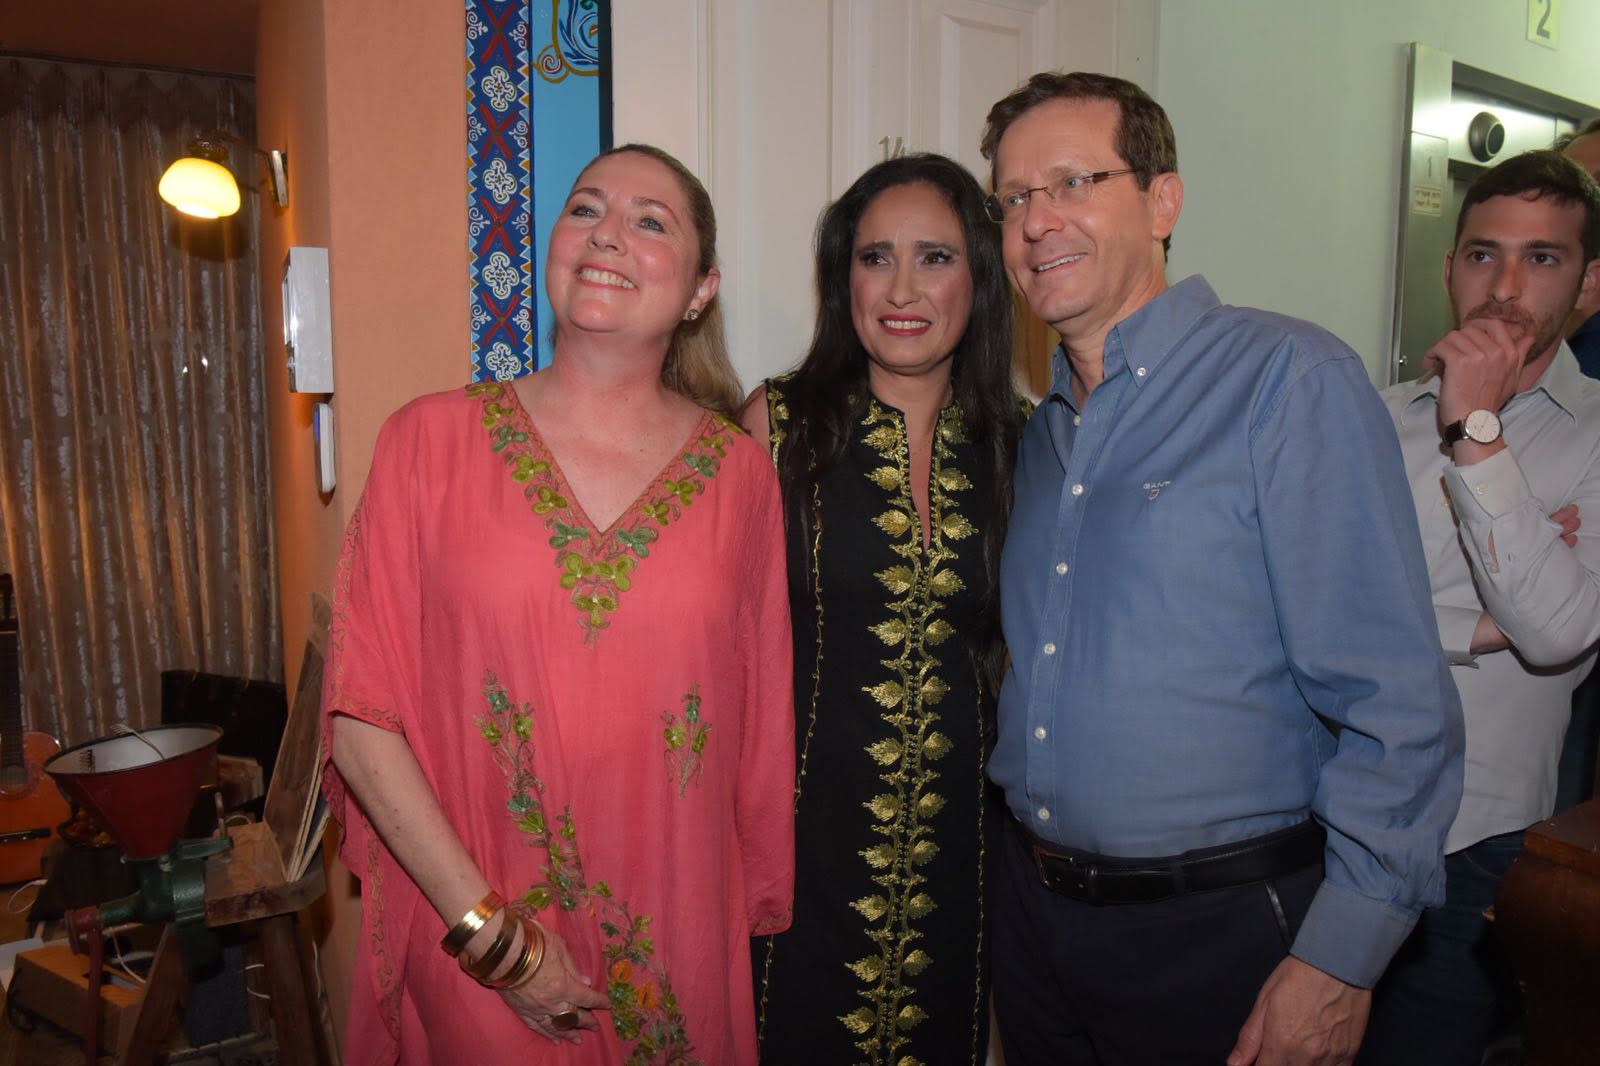 Opposition leader Isaac Herzog at a Mimouna celebration, April 2018 (AVSHALOM SASSONI/ MAARIV)